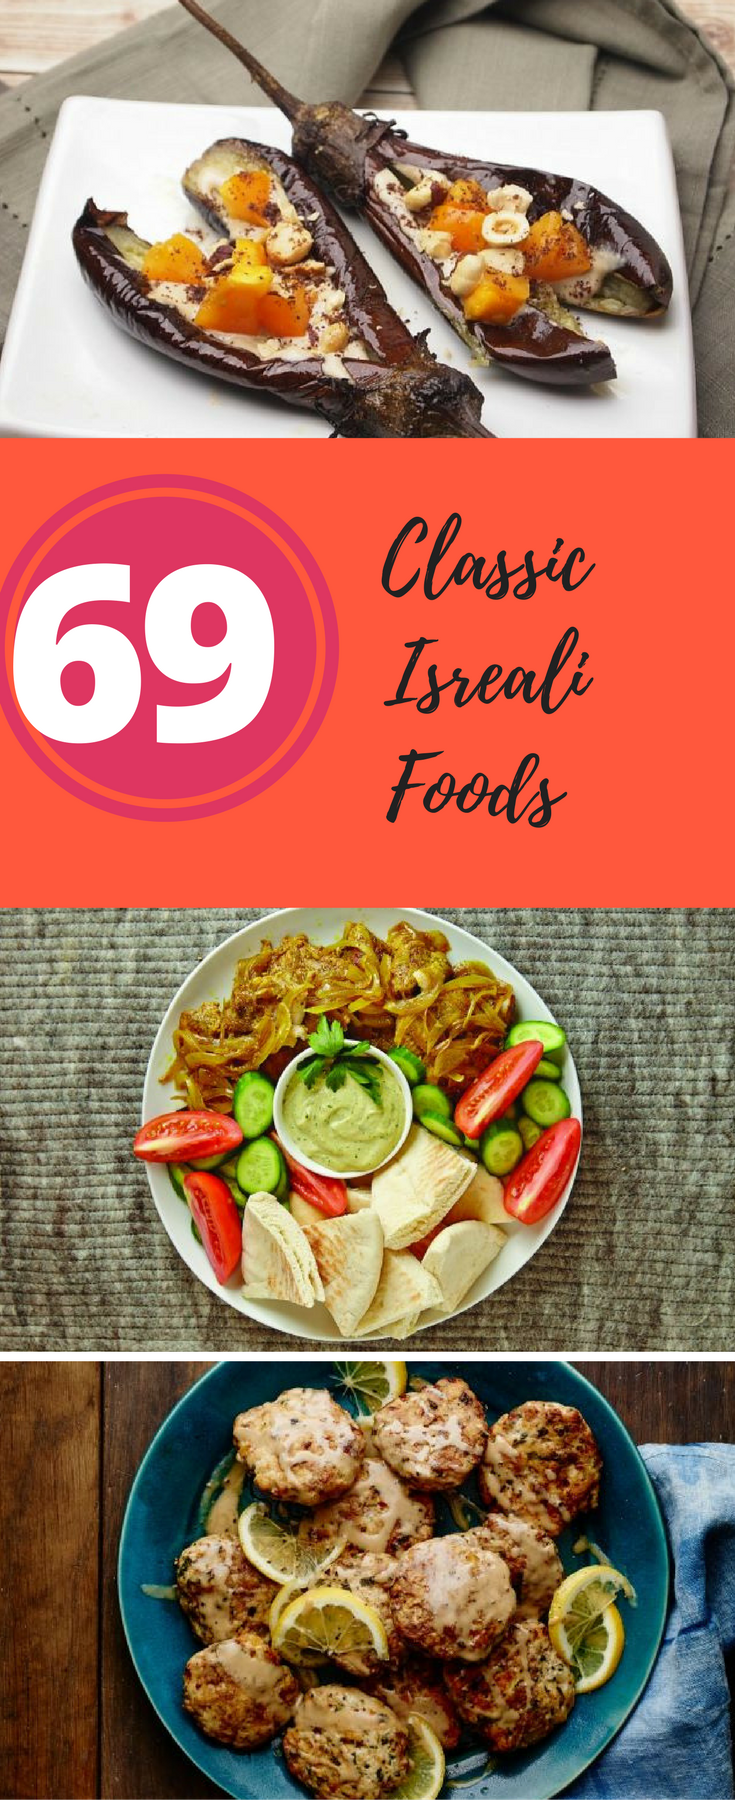 69 israeli recipes to make this year israeli food food and jewish 69 israeli recipes to make this year israeli recipesisraeli foodjewish recipesasian recipeseasy forumfinder Image collections